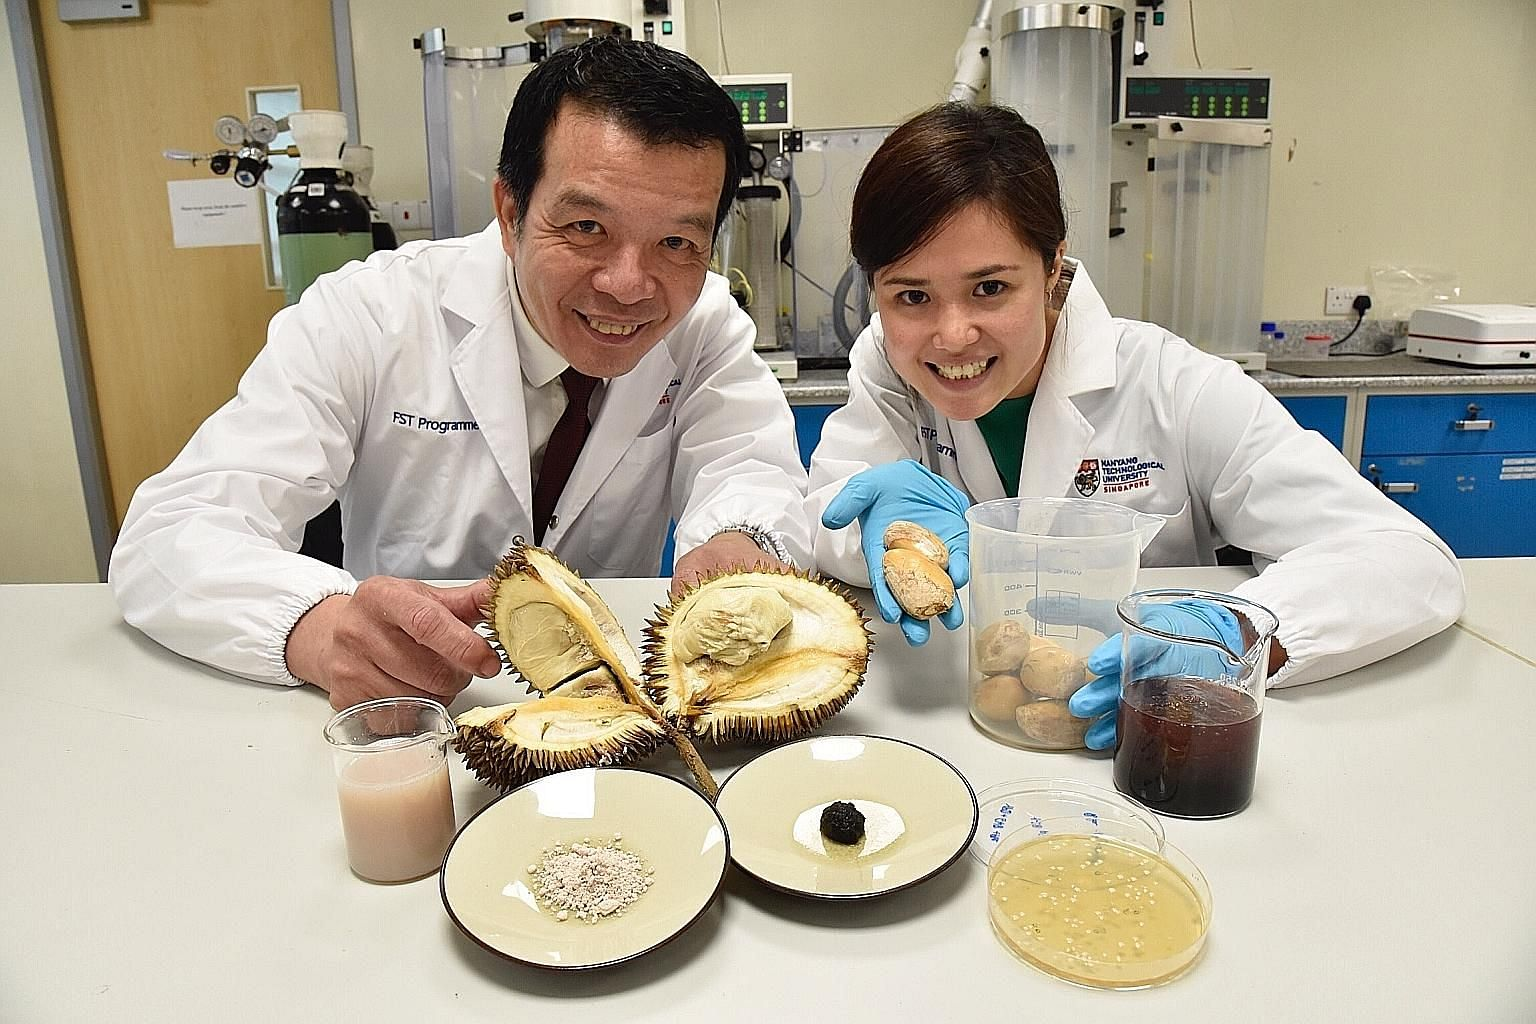 Professor William Chen, director of Nanyang Technological University's food science and technology programme, Dr Jaslyn Lee, NTU research fellow, and their team turned food waste into usable products.